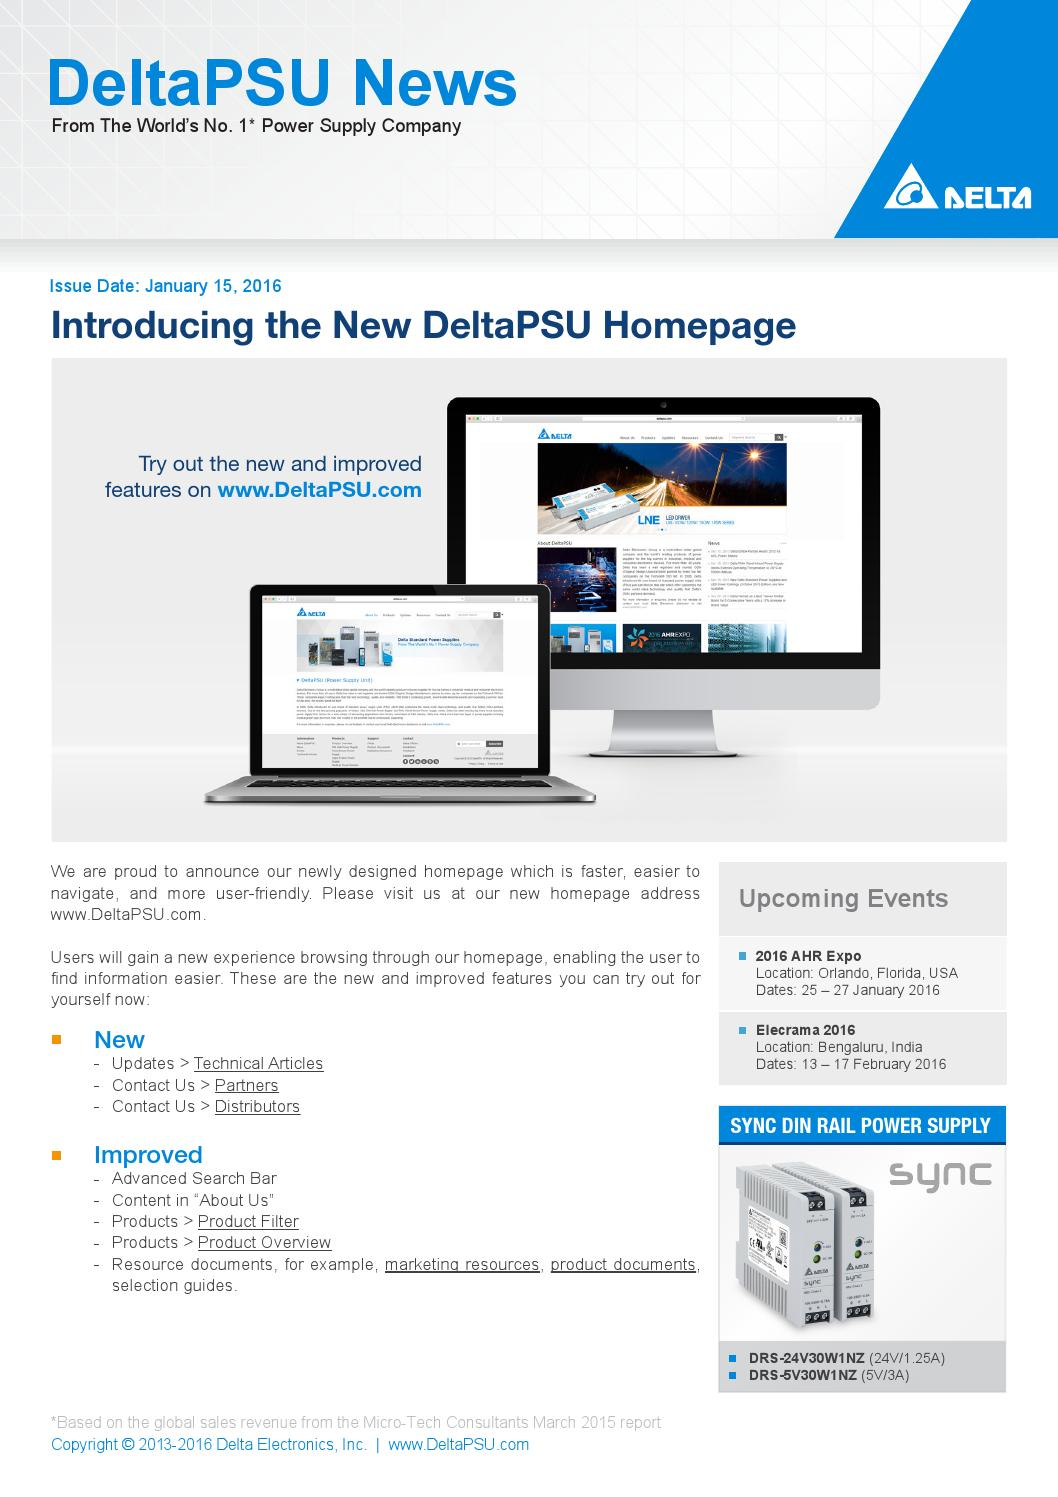 Deltapsu news introducing the new deltapsu homepage by